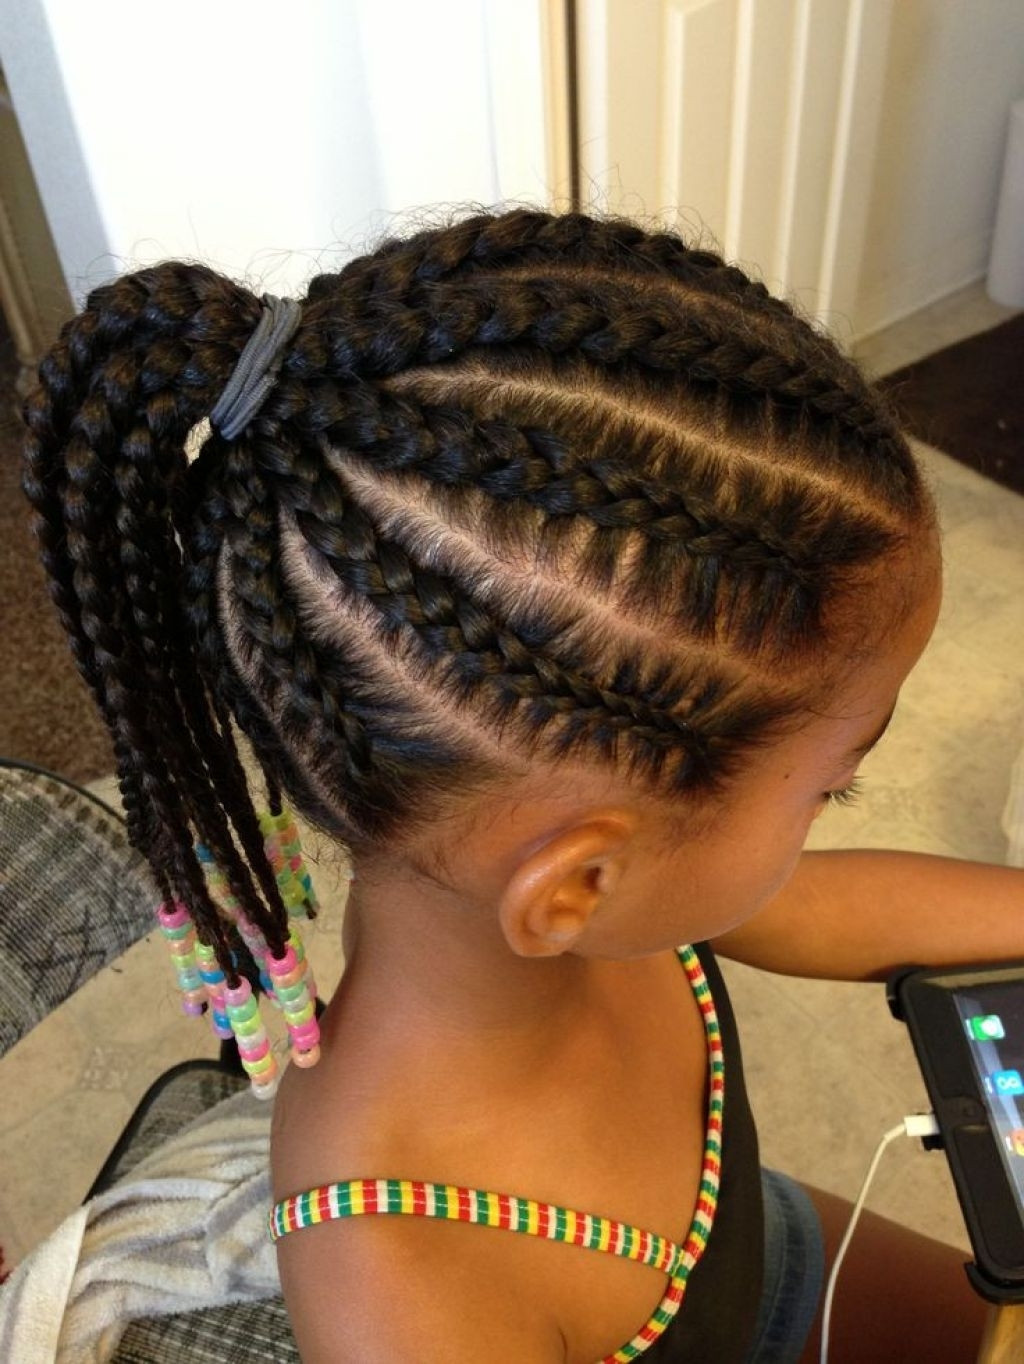 Best ideas about Children Hairstyles Braids . Save or Pin Cornrows Braids Hairstyles For Little Girls Now.